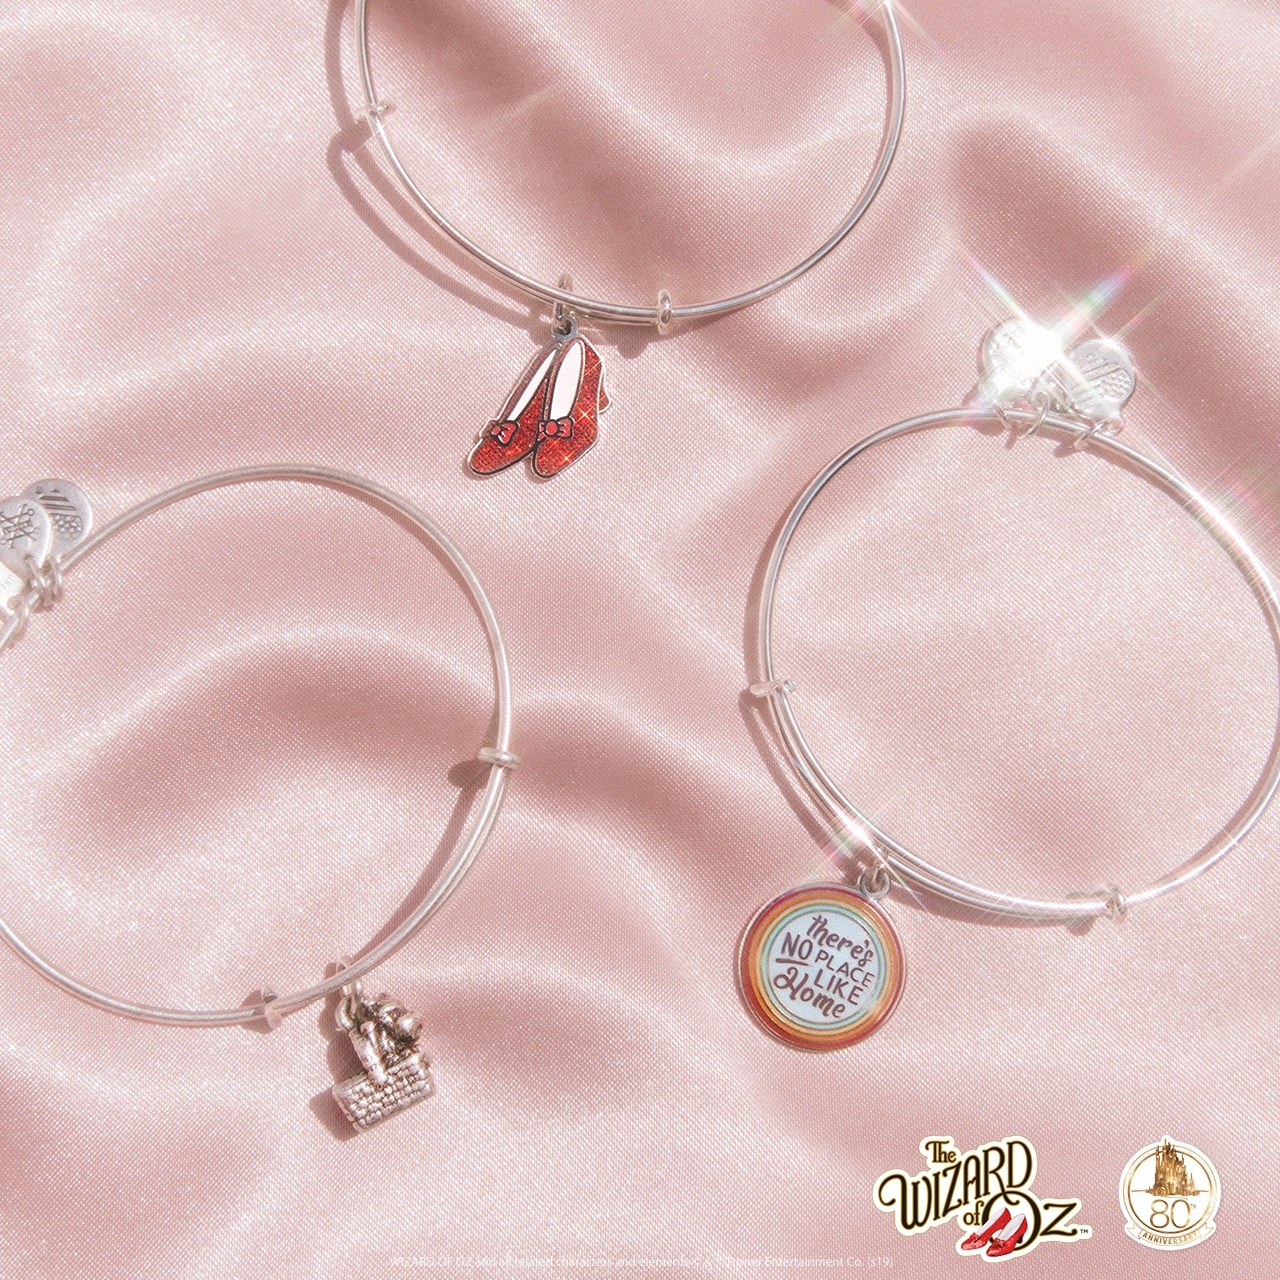 ALEX AND ANI Wizard of Oz Collection Launch from ALEX AND ANI